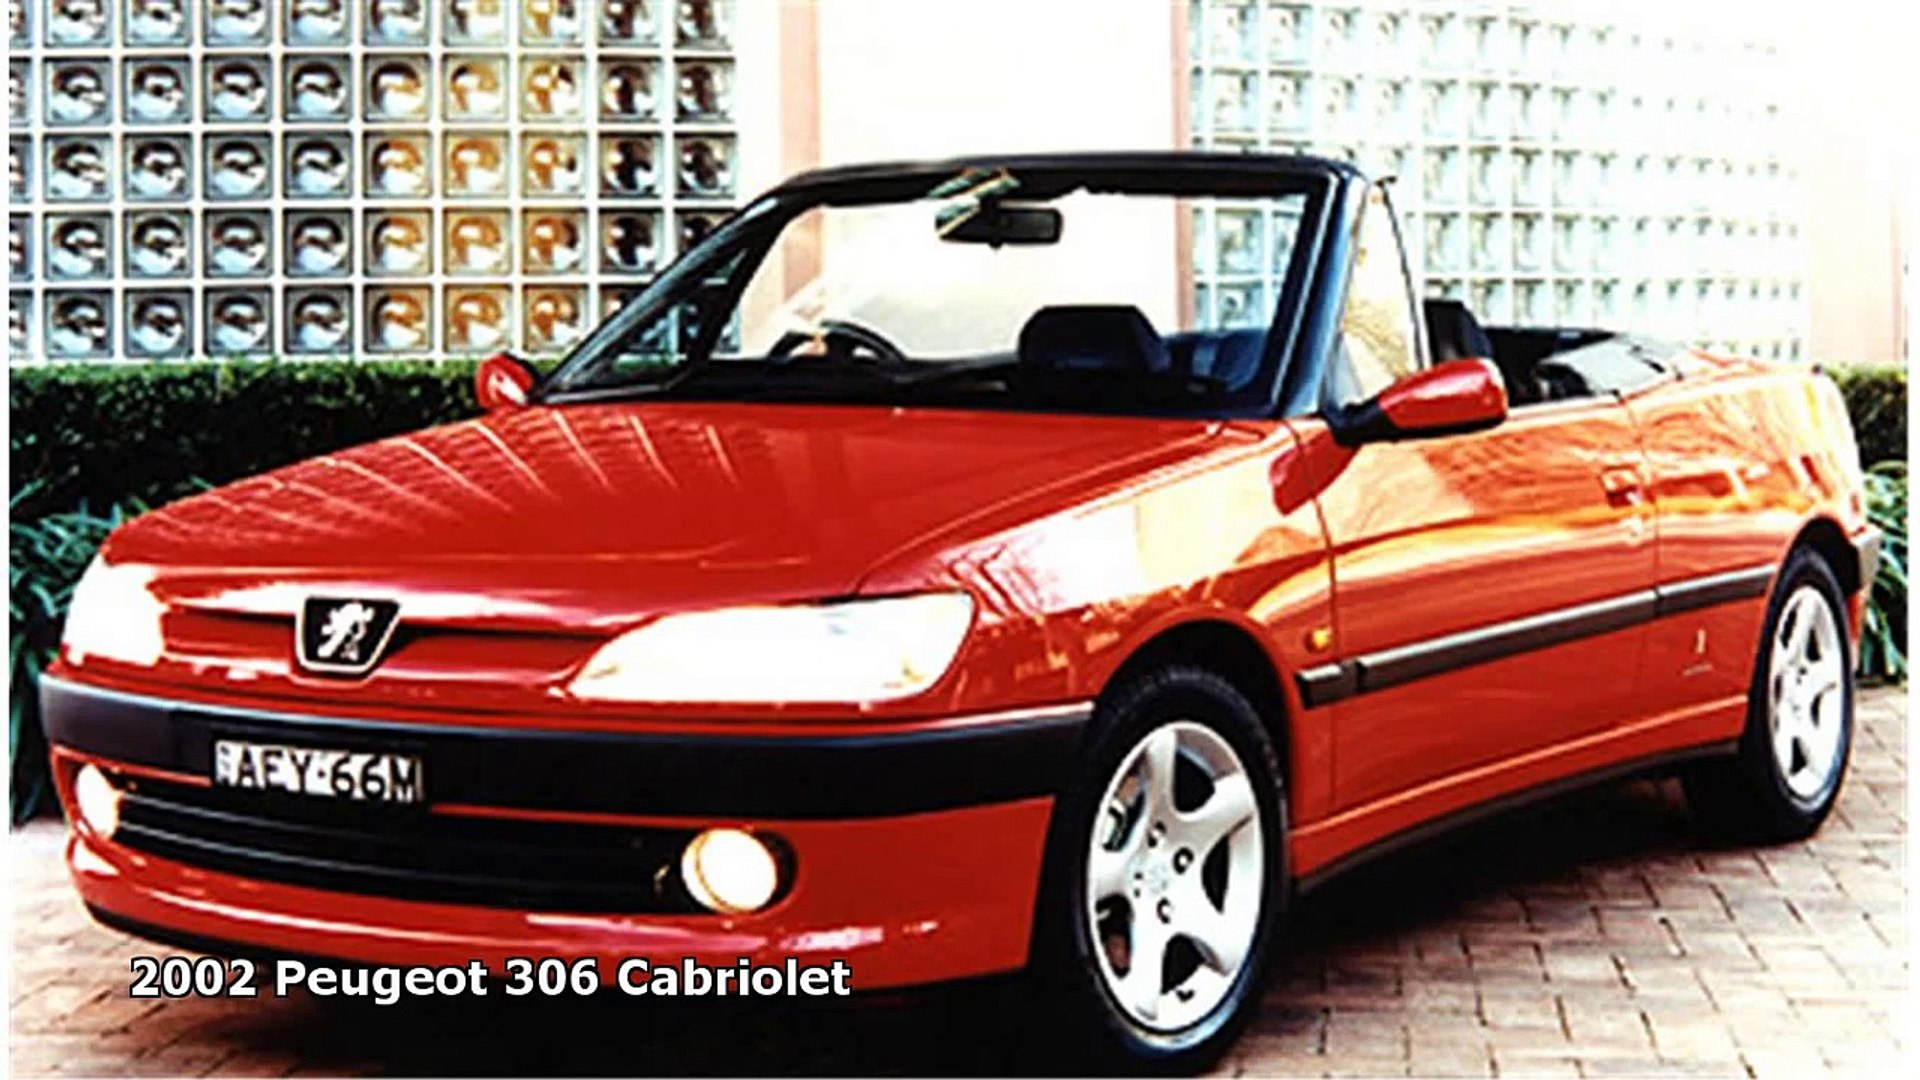 2002 Peugeot 306 Cabriolet Video Dailymotion